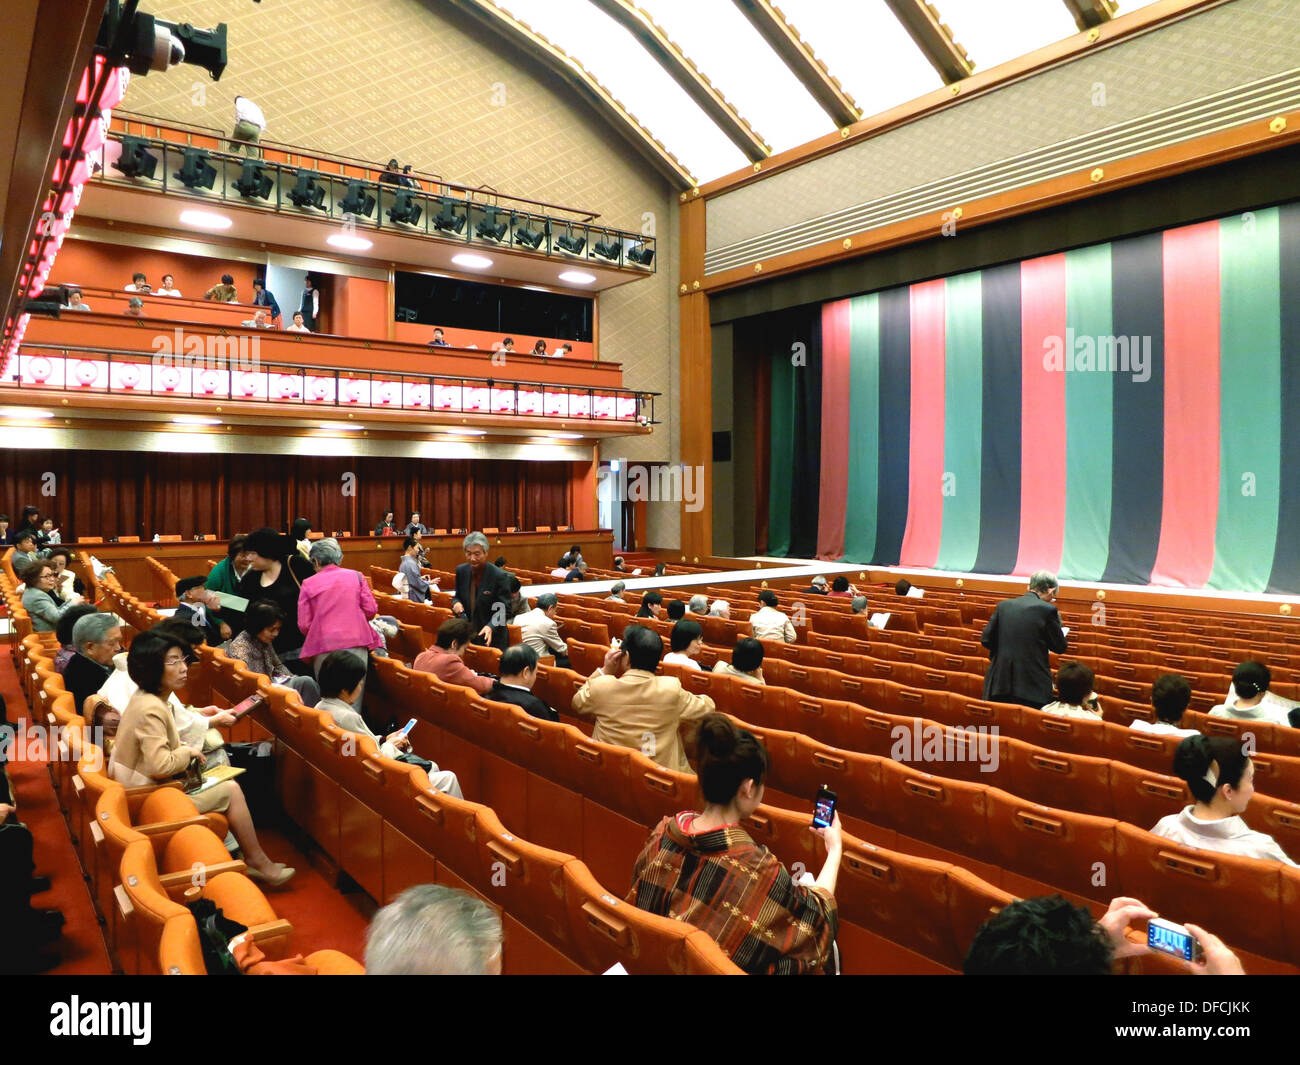 Interior View Of A Traditional Kabuki Theatre During An